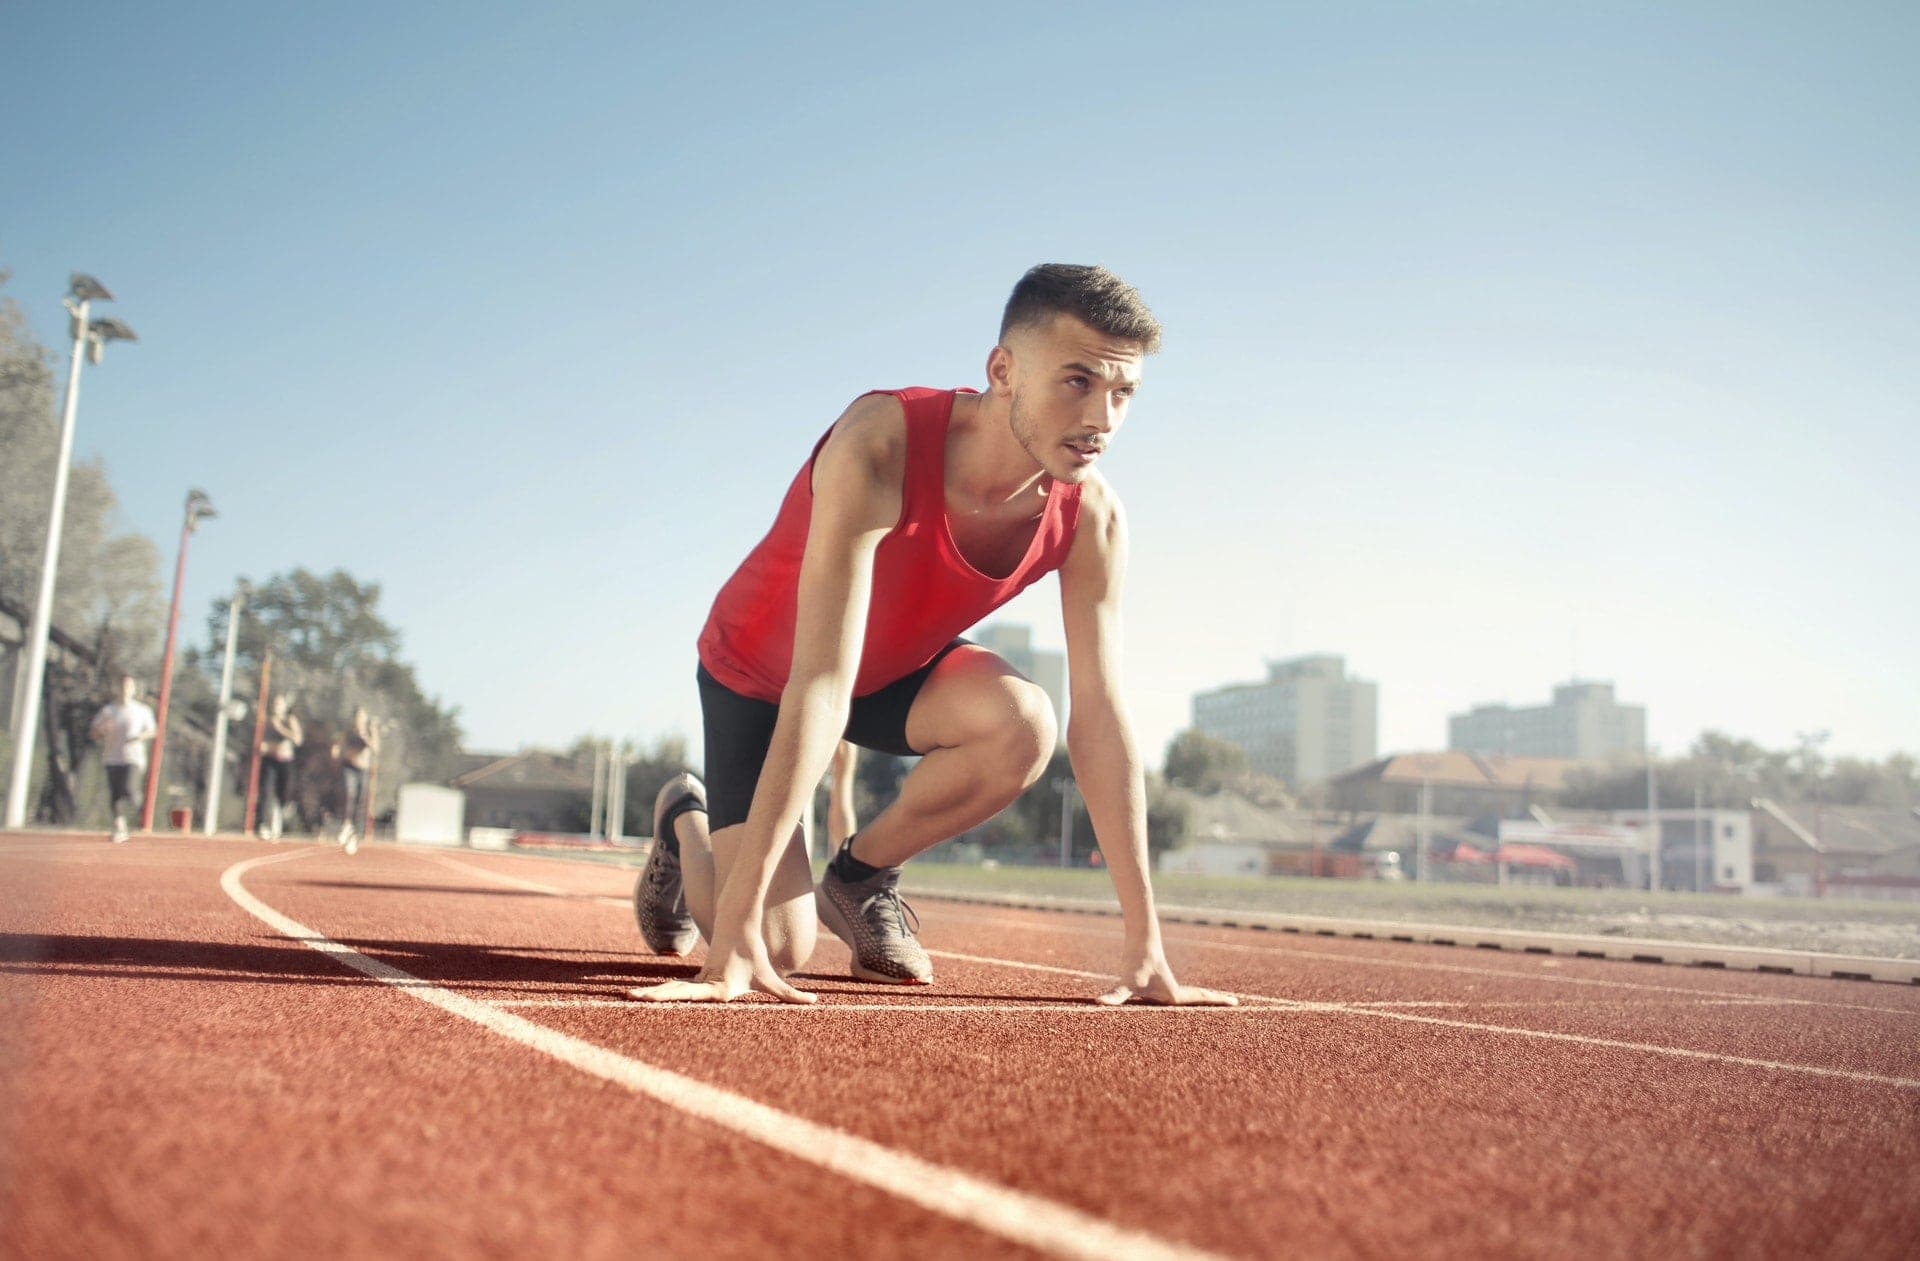 Best Multivitamin For Athletes – 4 Top Picks For Boosting Immunity And Strength